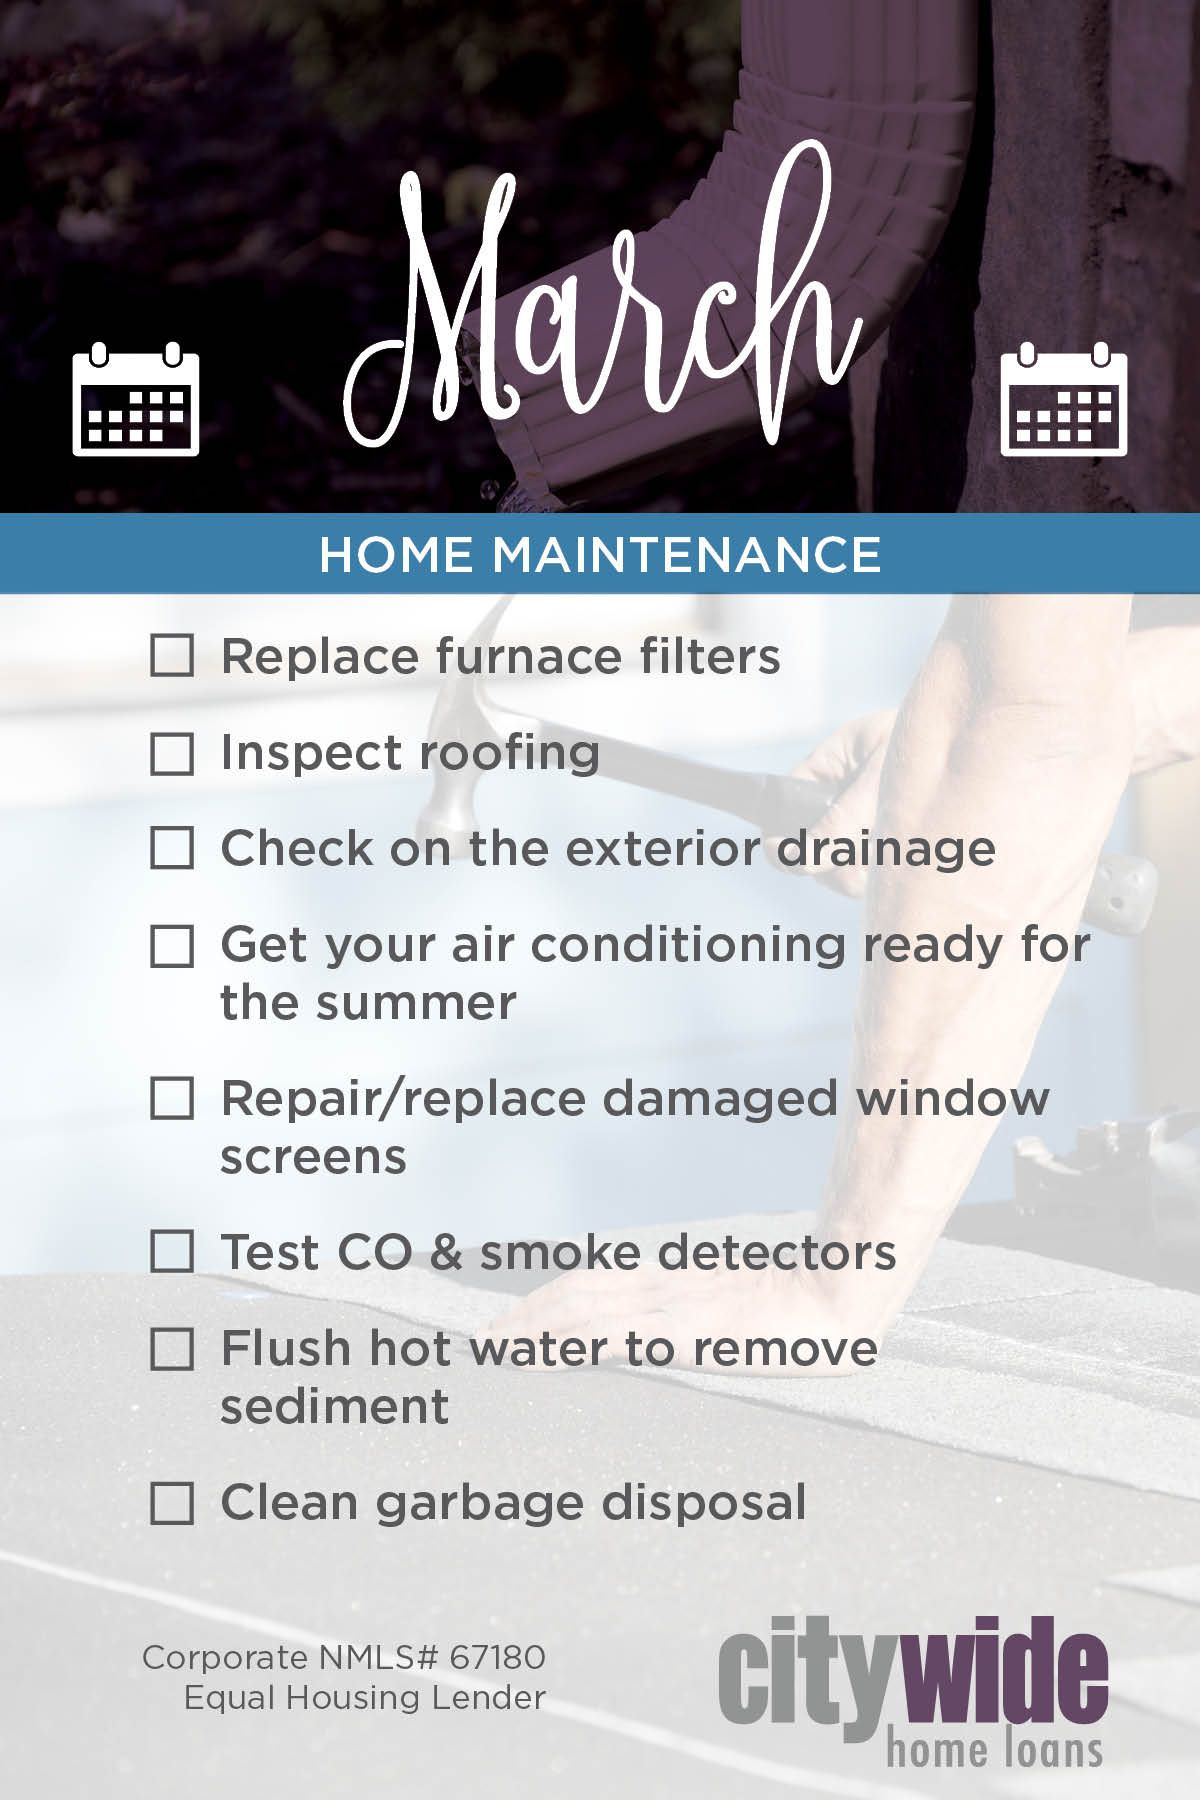 Pin By Citywide Home Loans On Home Maintenance Home Maintenance